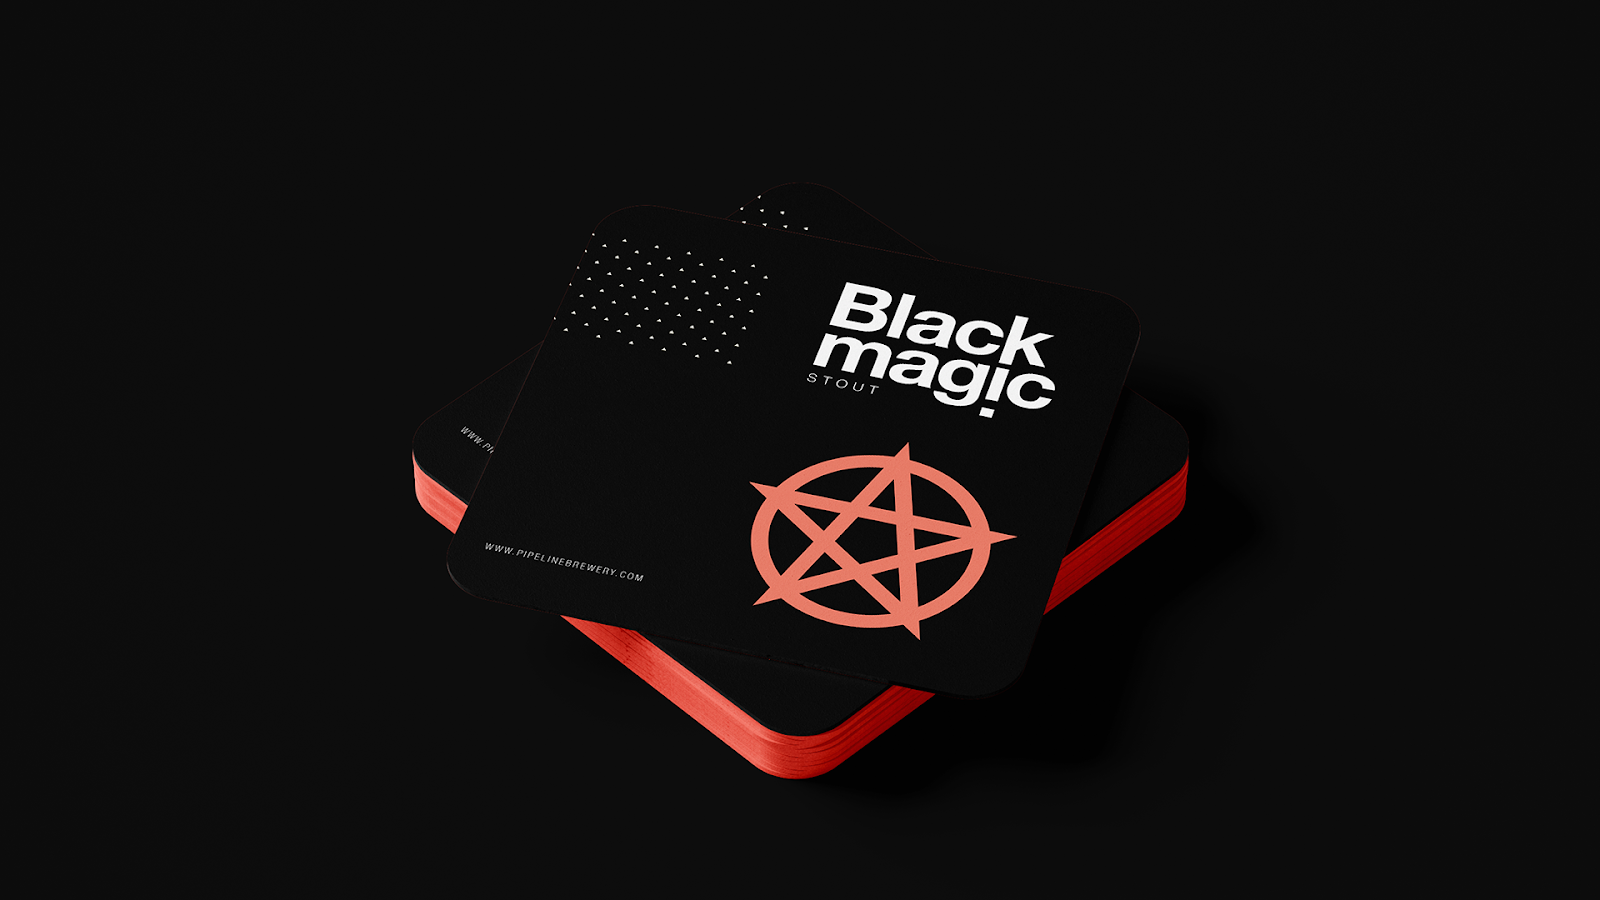 Miha Avsenik Pipeline Brewery Black Magic Stout World Brand Design Society Pipeline Brewery Is A Non Comme Branding Design Promotional Design Brewery